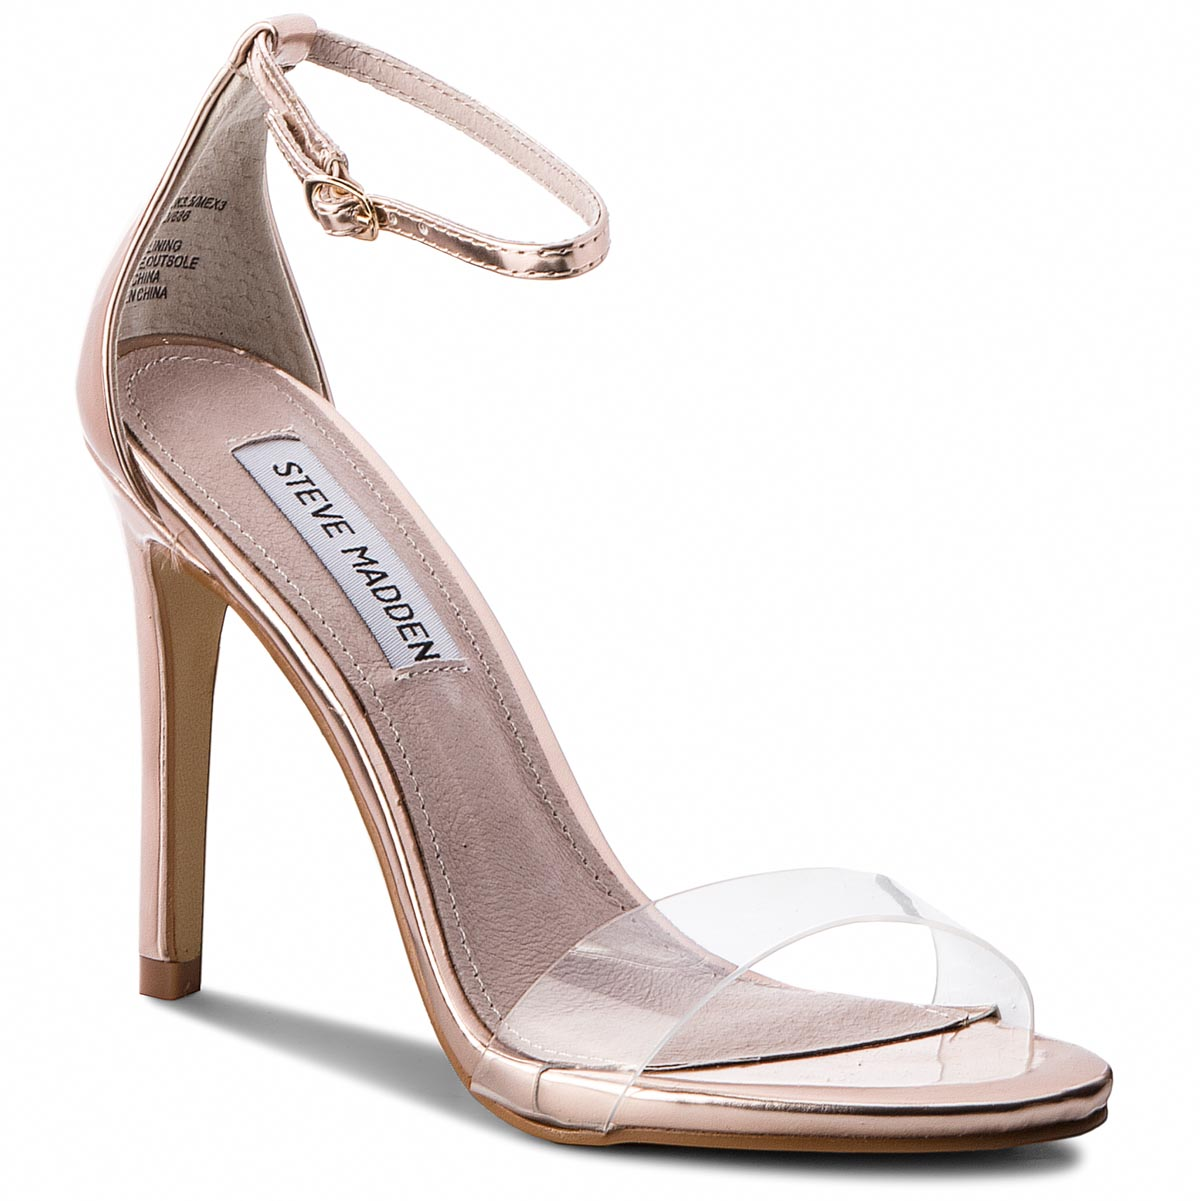 Sandale STEVE MADDEN - Stecy-C High Heel Sandal 91001144-07099-15002 Rose Gold